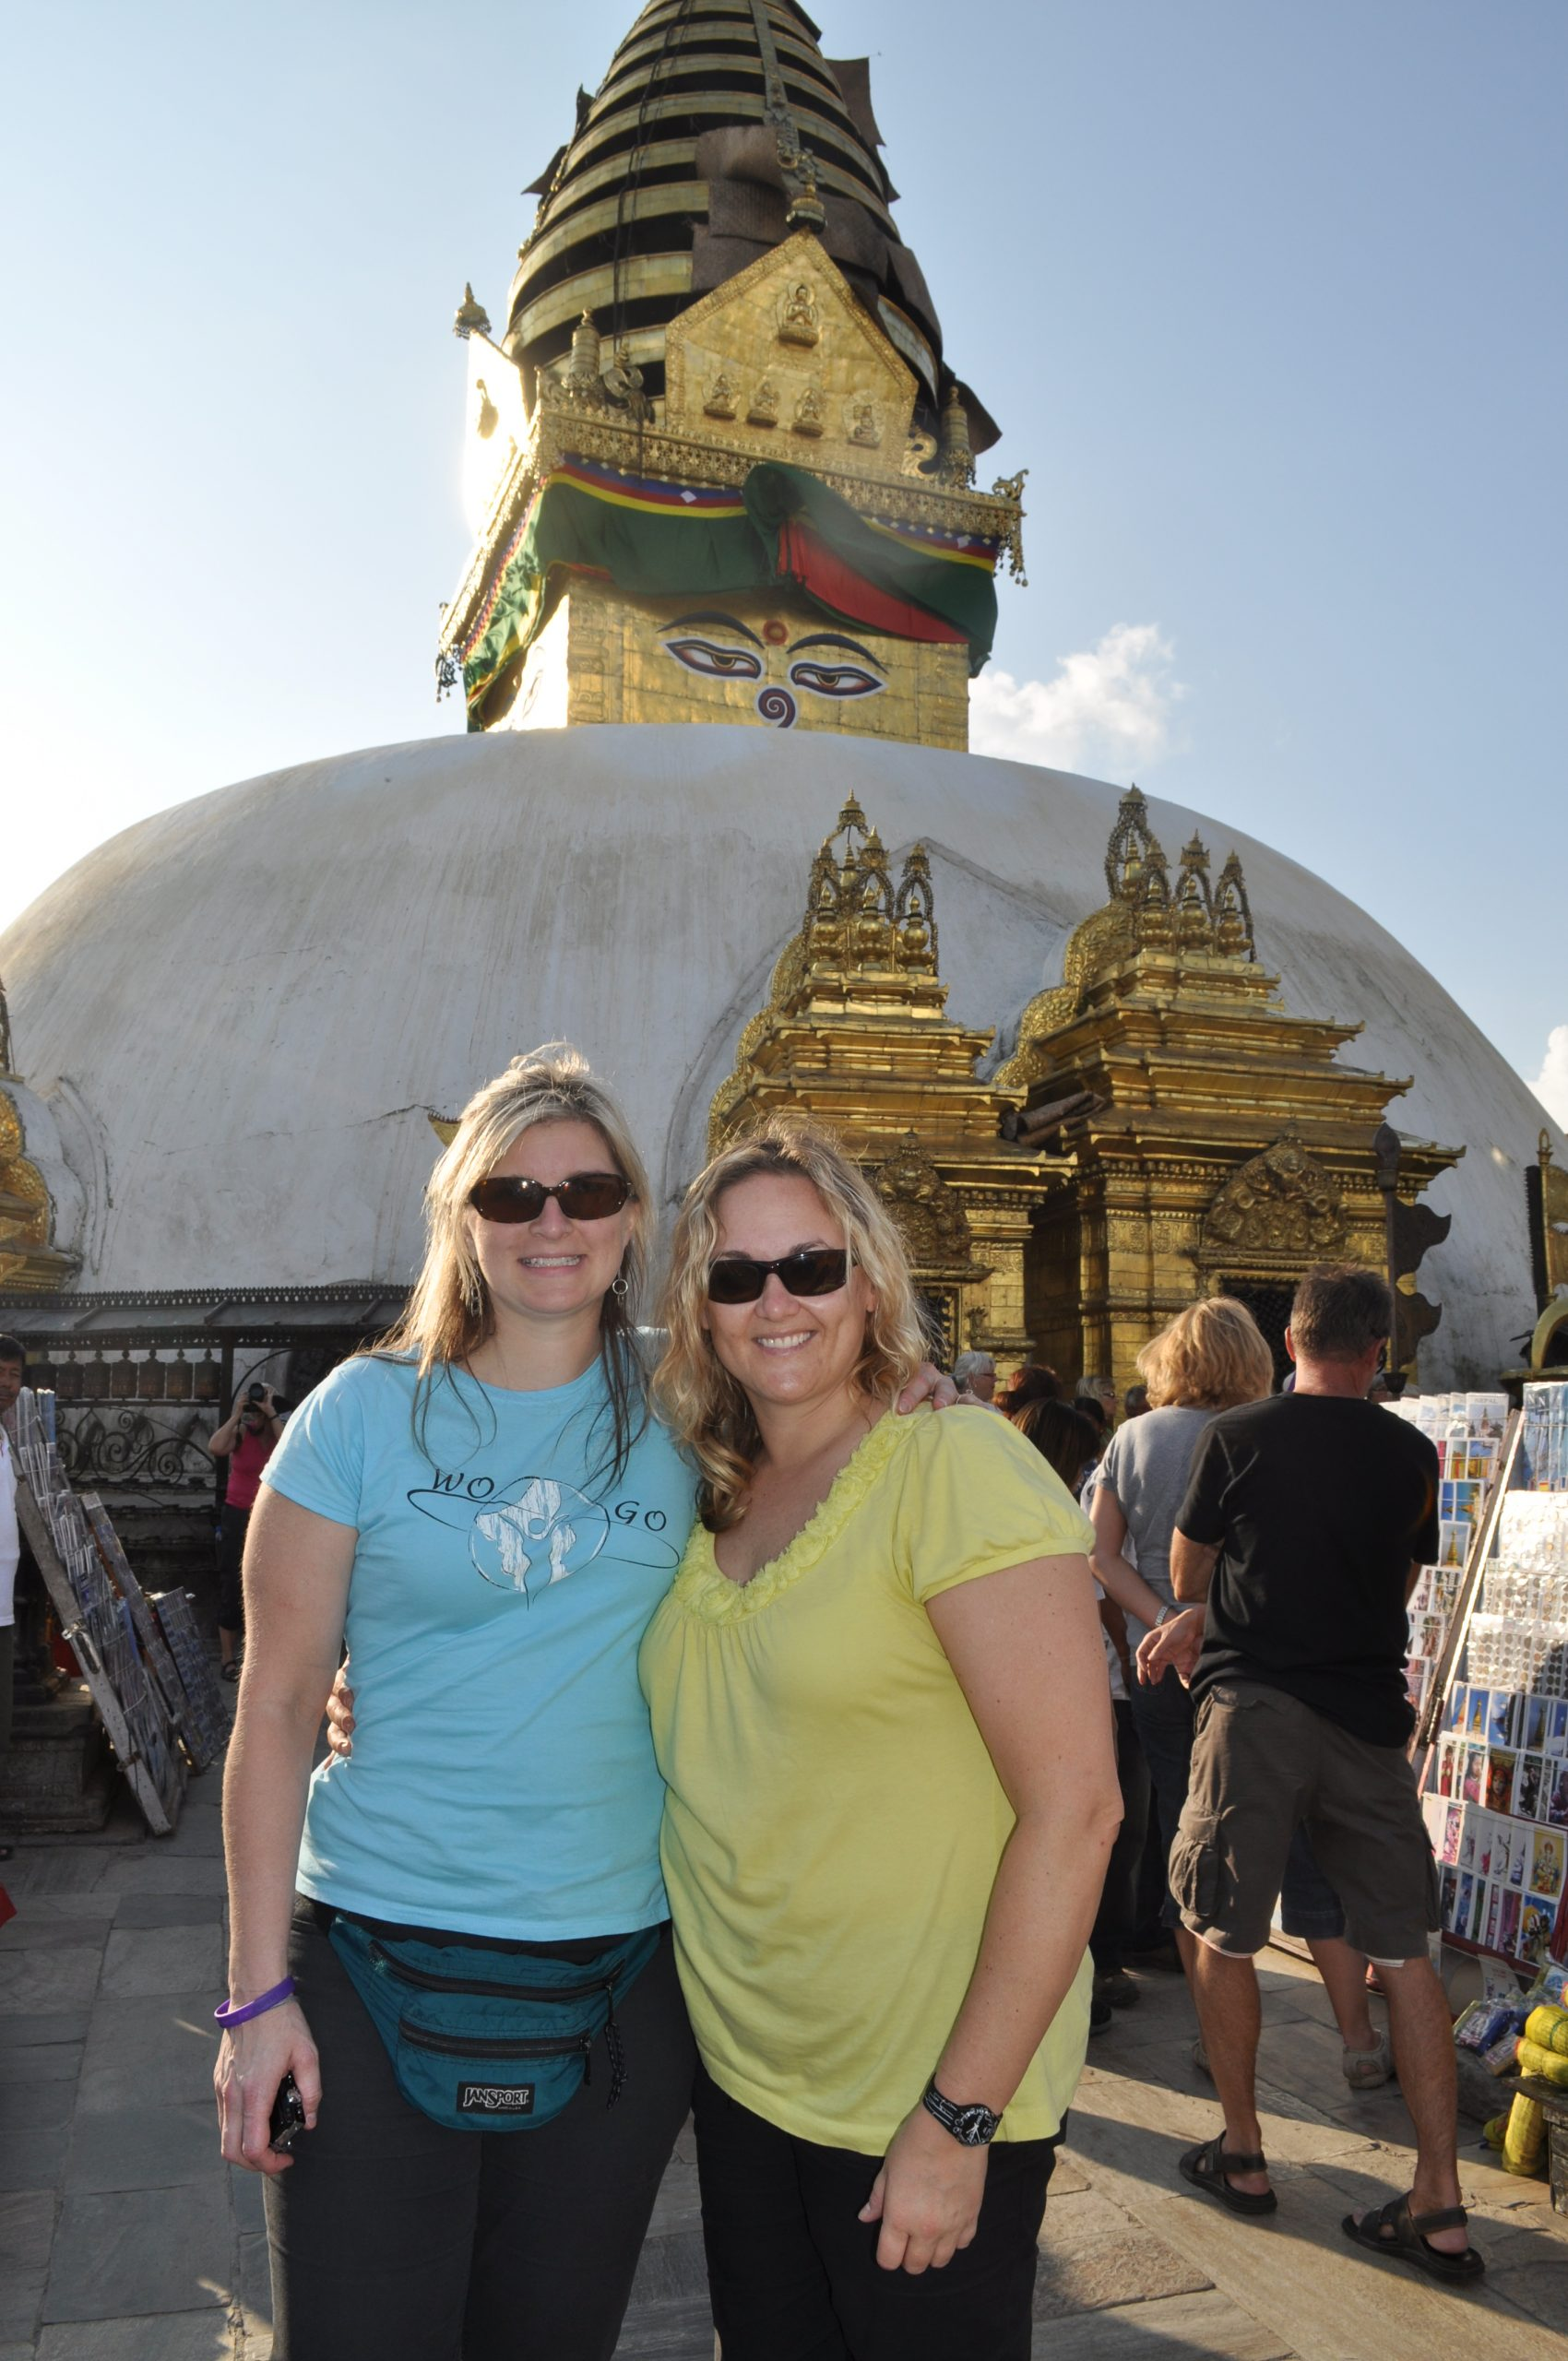 Shawn and one of the WOGO doctors, Dr. Hakanson, at the Monkey Temple in Nepal.